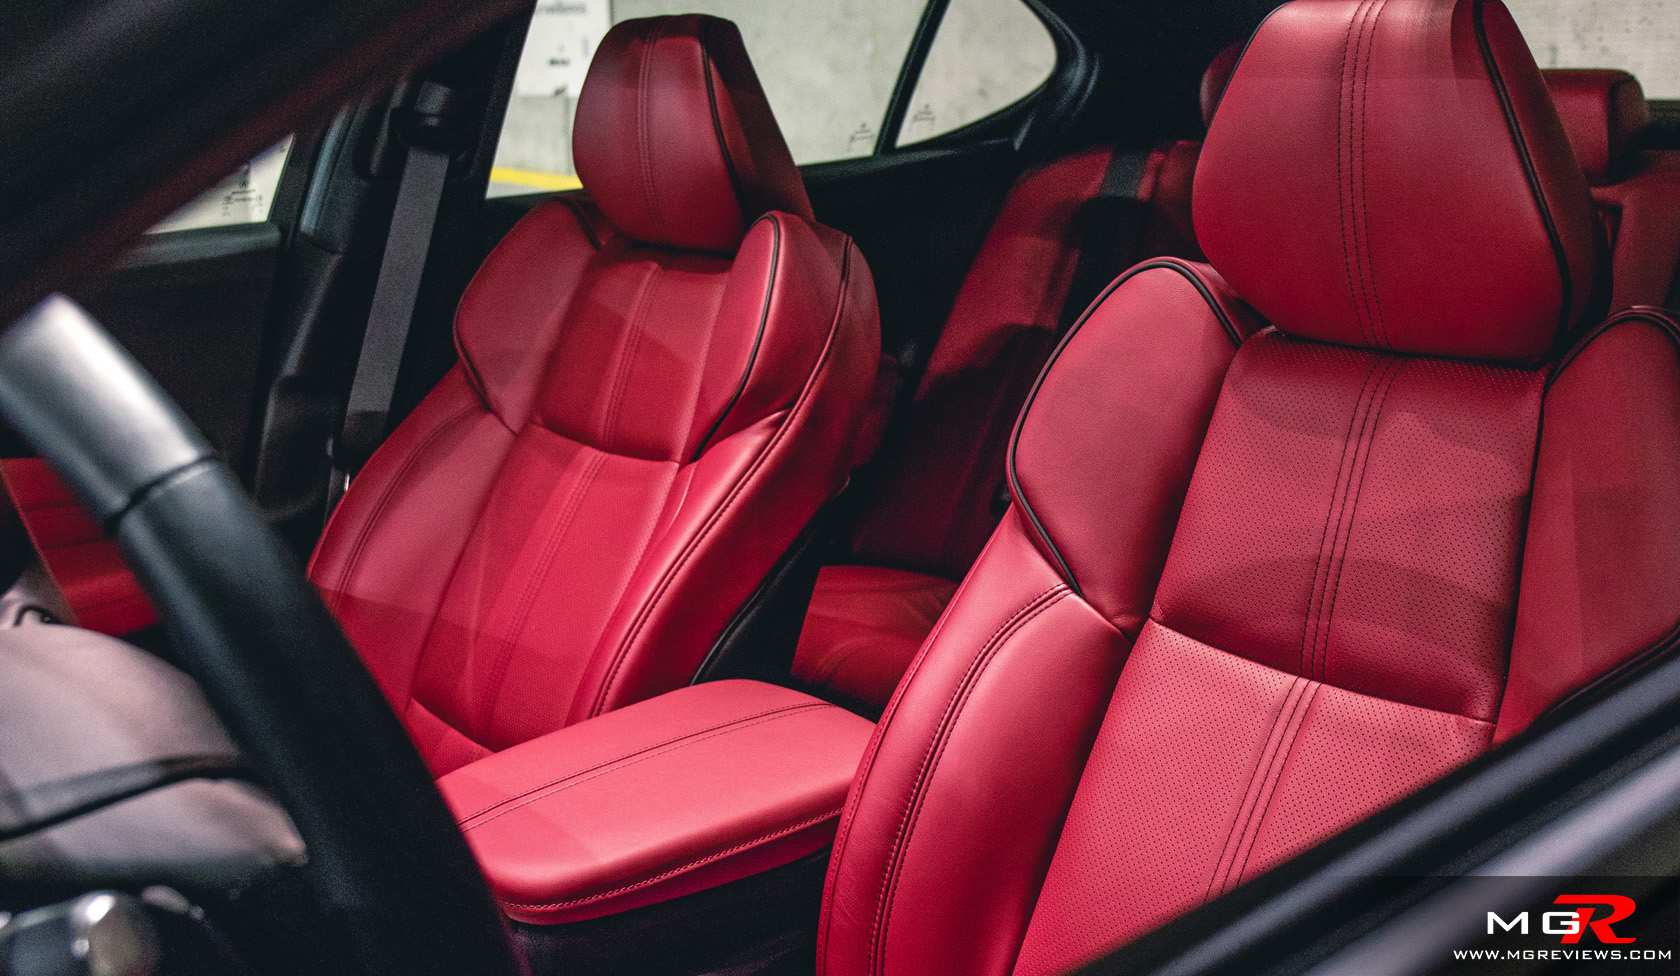 Review Acura TLX ASpec MGReviews - 2018 acura tl seat covers